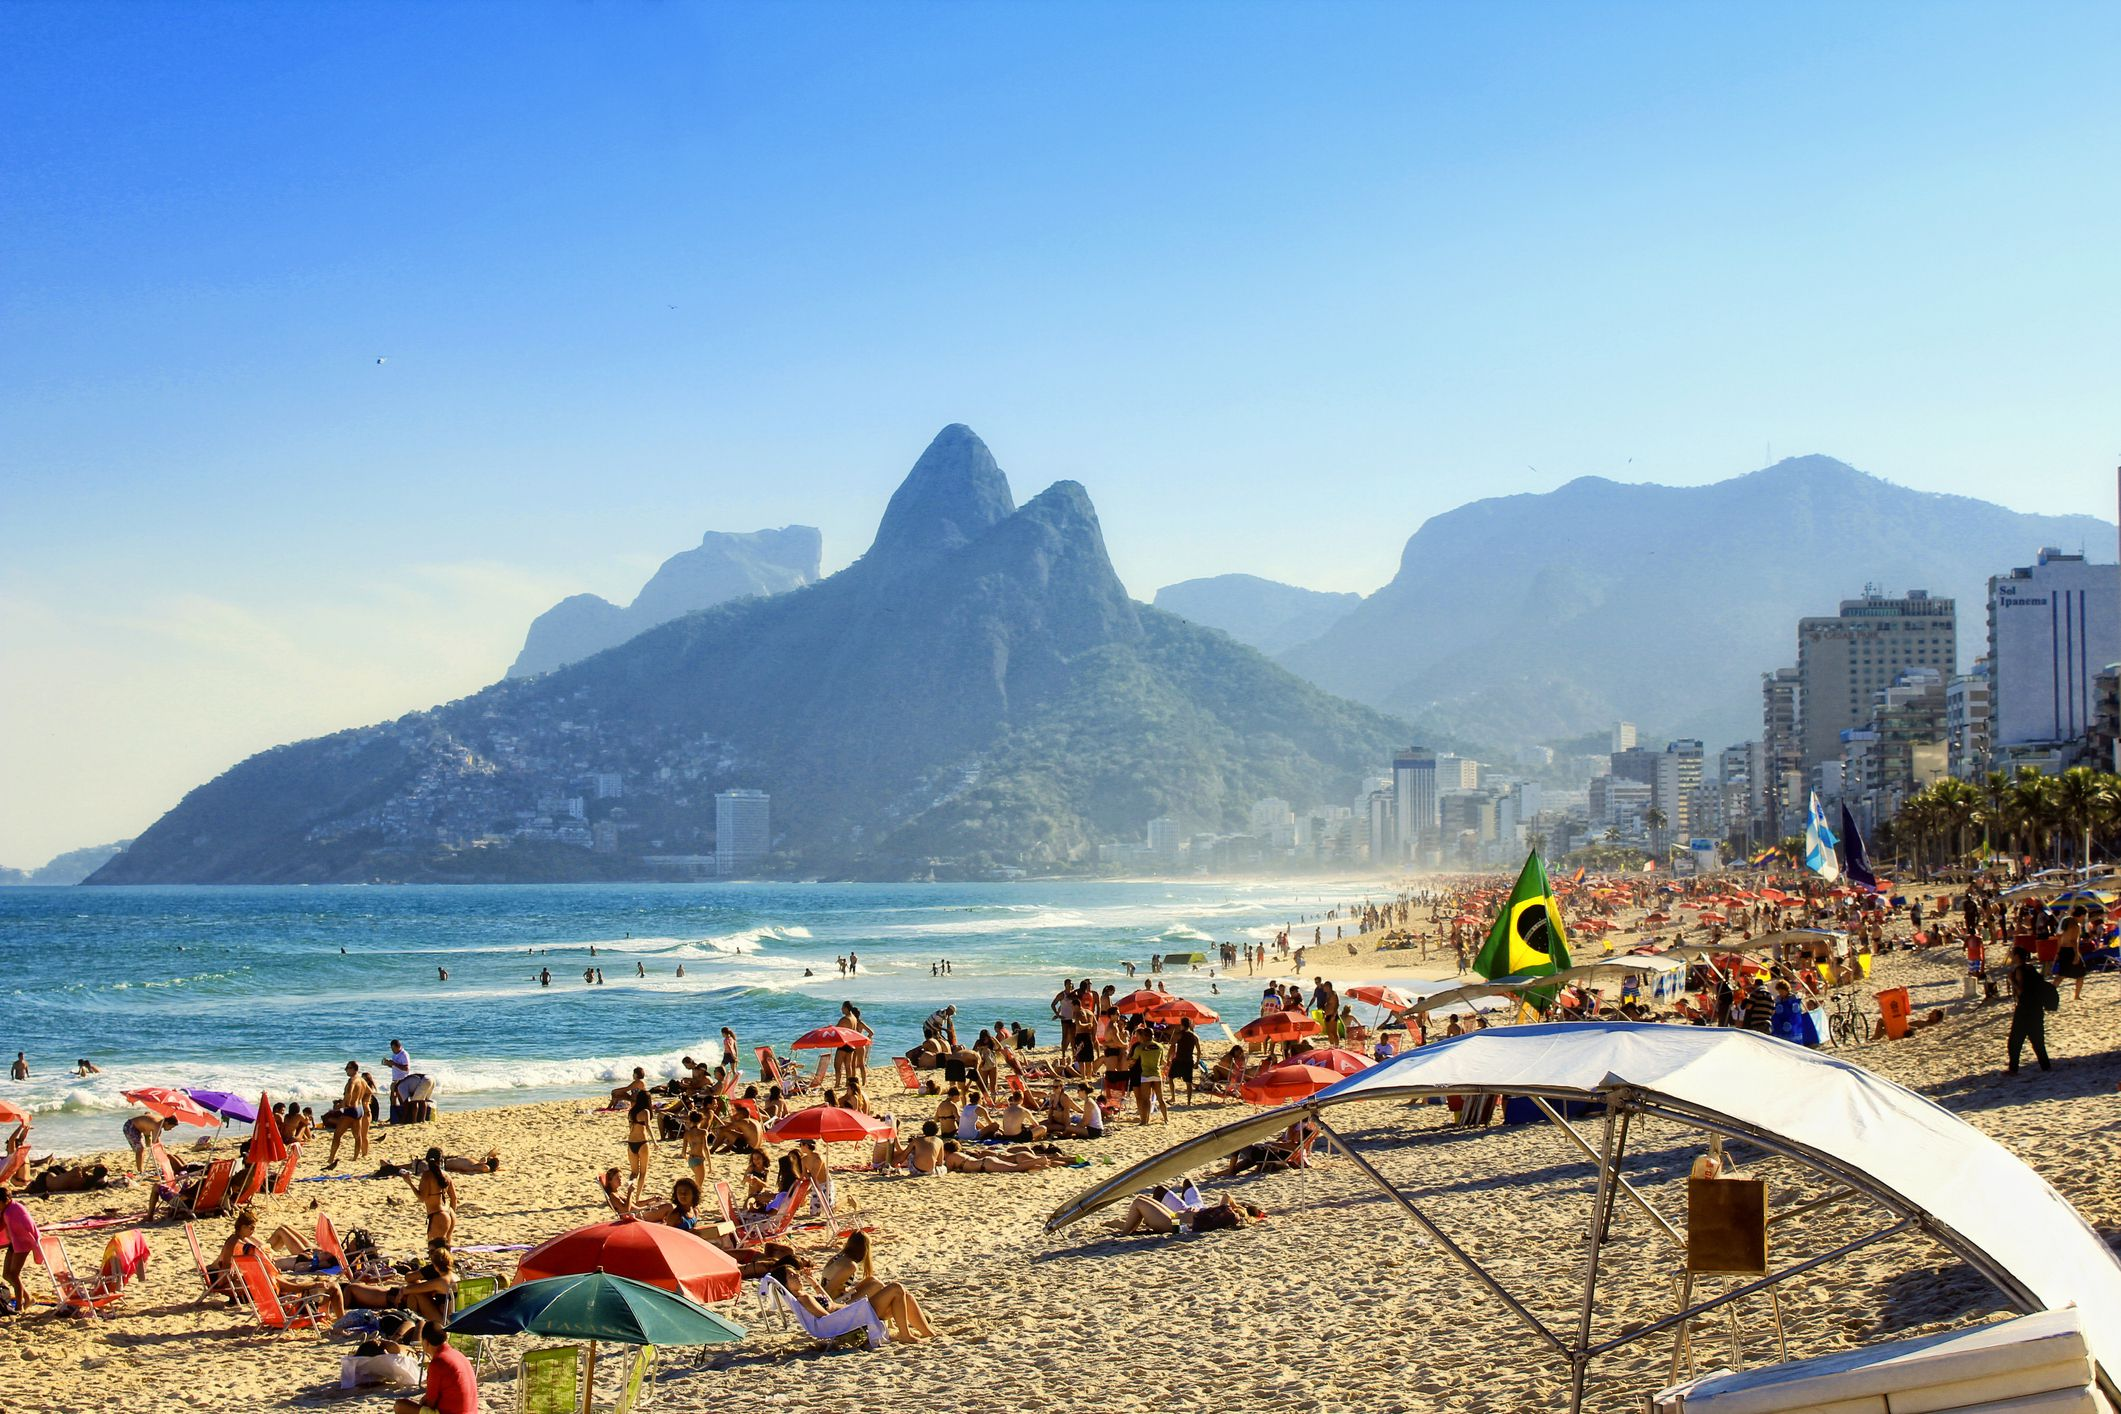 The Best Time to Visit Rio de Janeiro